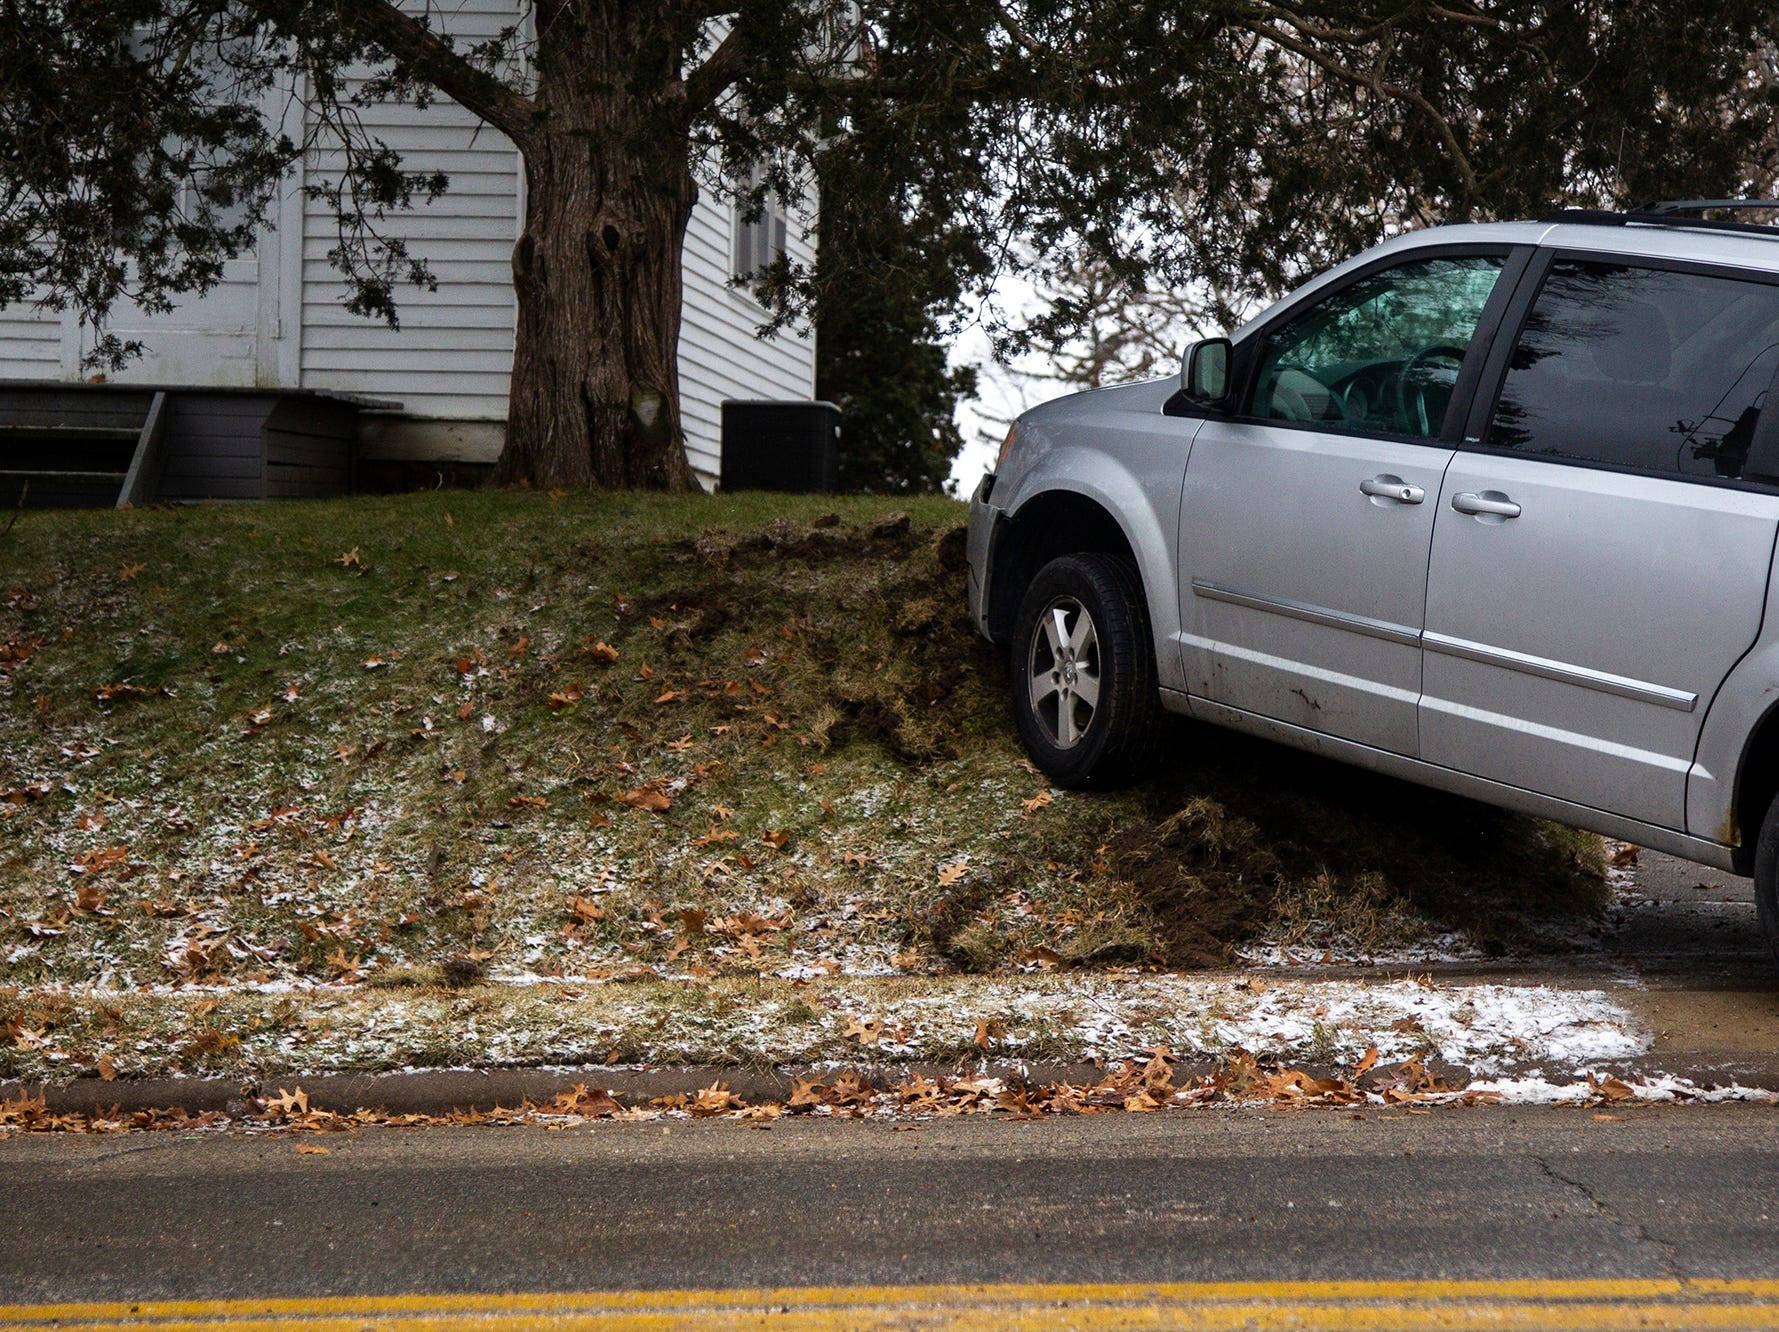 A minivan's front end is stuck on a hill next to a fire hydrant during icy road conditions on Friday, Dec. 28, 2018, off of Court Street near 2nd Avenue on the east side of Iowa City.